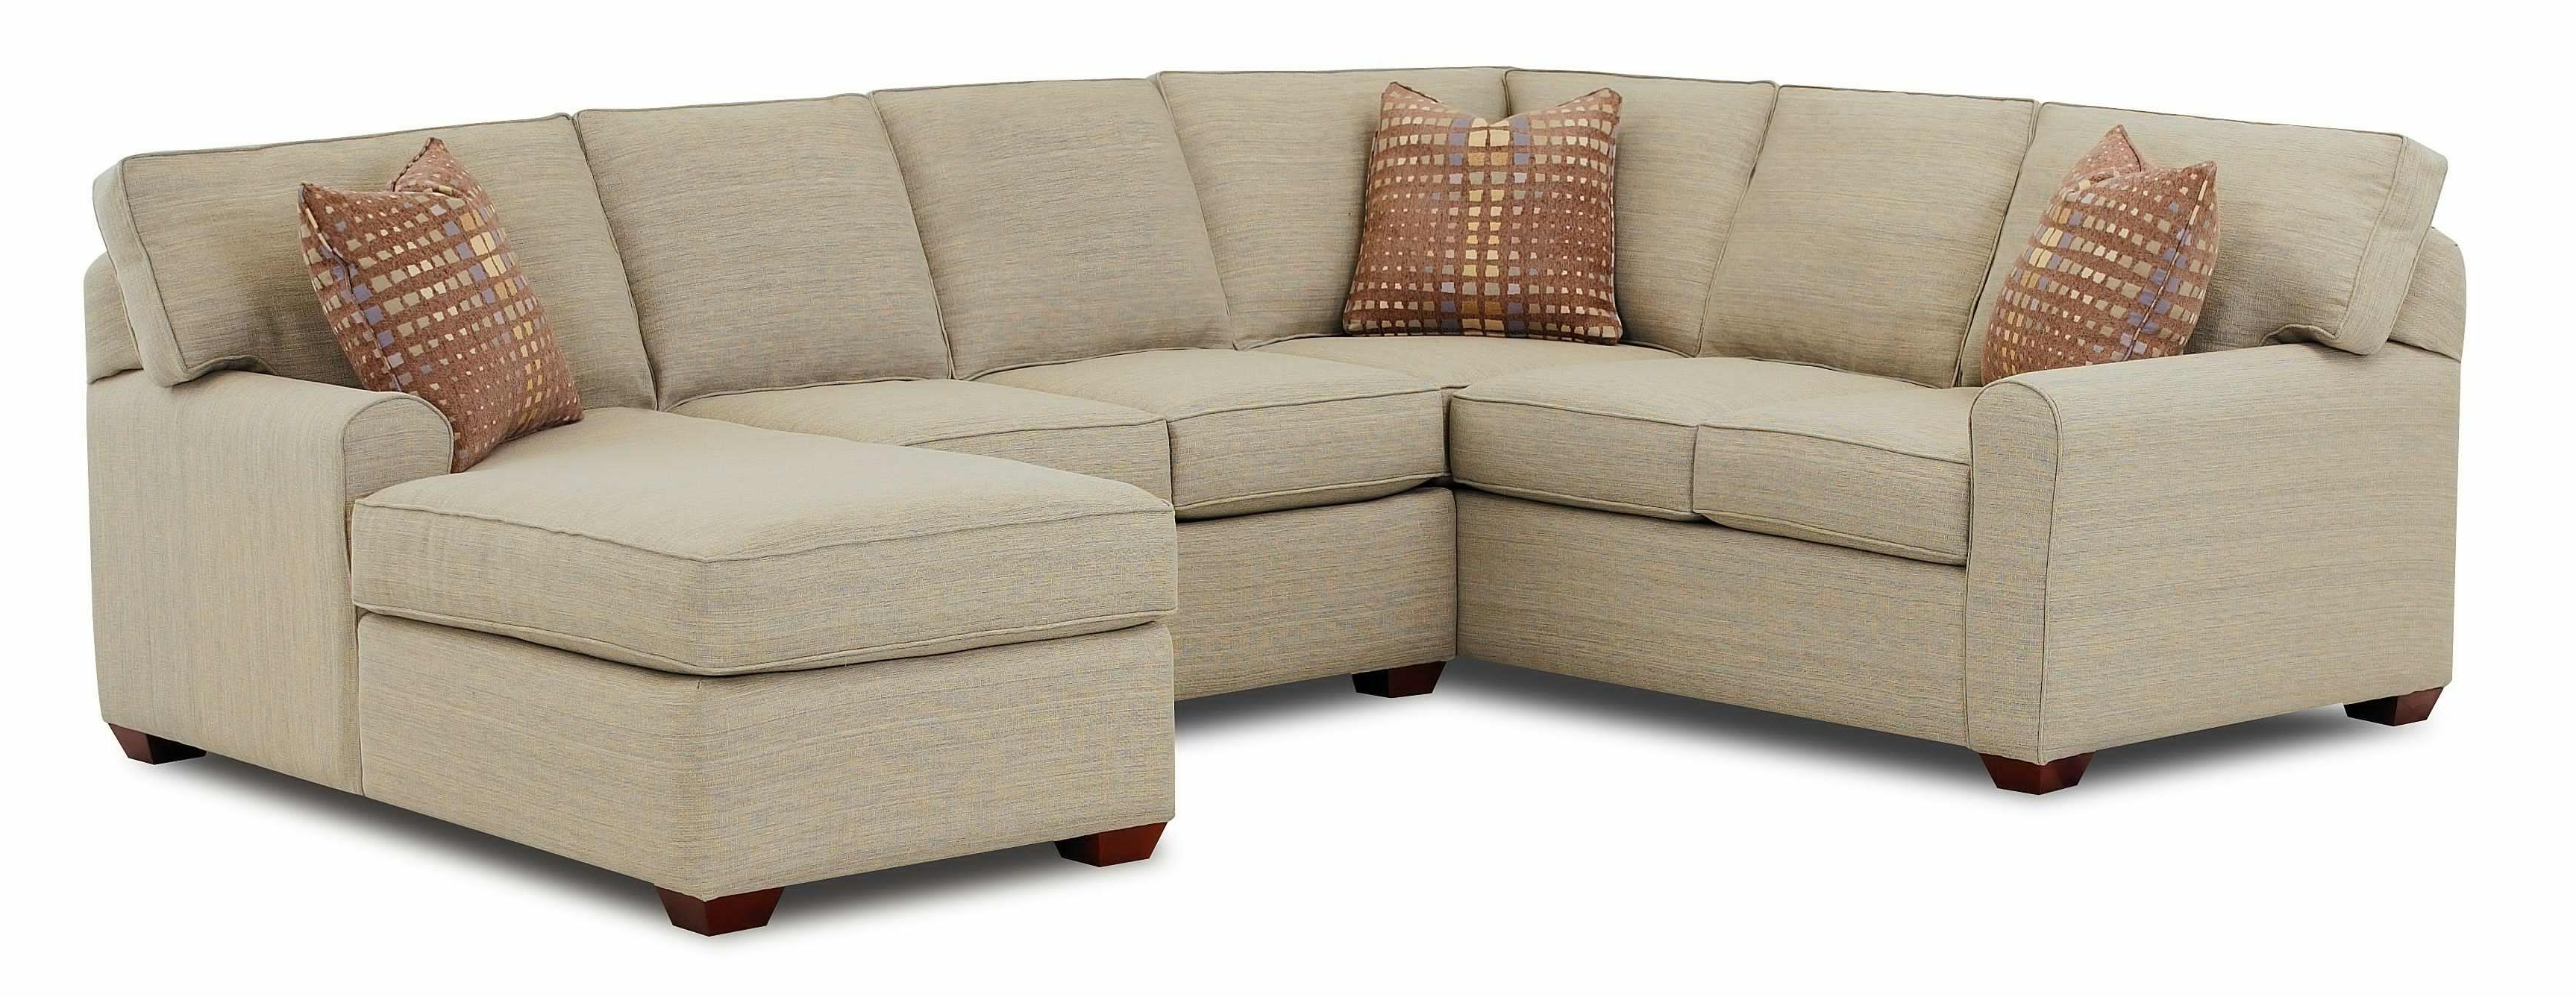 Sofa Chaise Lounges Pertaining To Best And Newest Small Sofa Chaise Lounge – Tanningworldexpo (View 15 of 15)